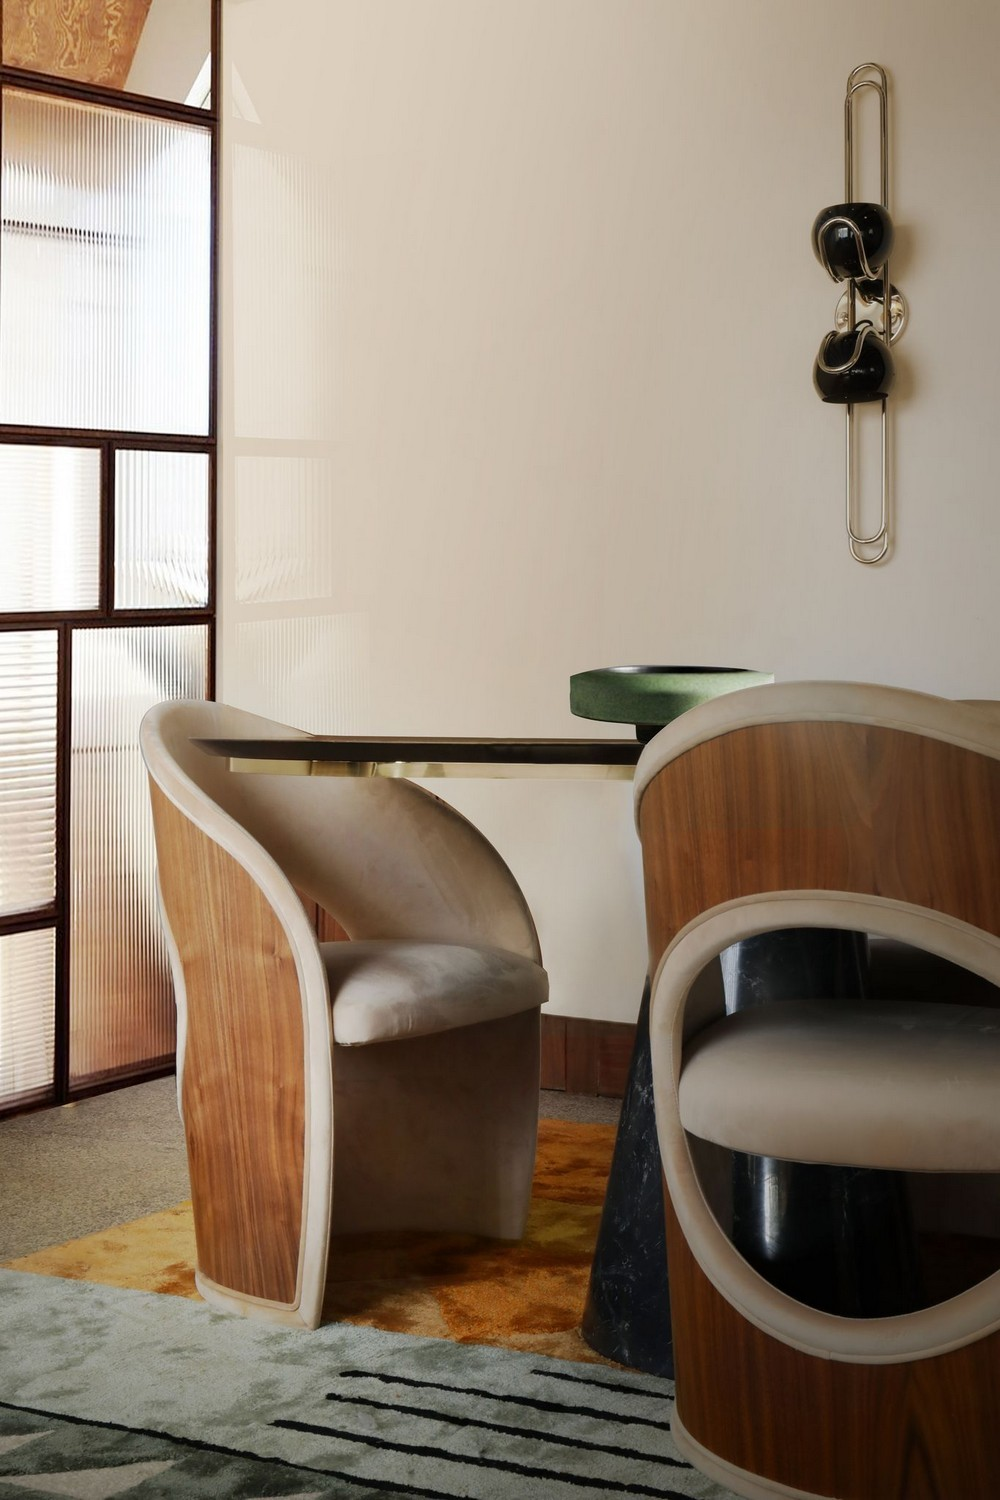 Luxury Dining Chairs To Transform Your Next Dining Room Project dining chairs Luxury Dining Chairs To Transform Your Next Dining Room Project luxury comfort